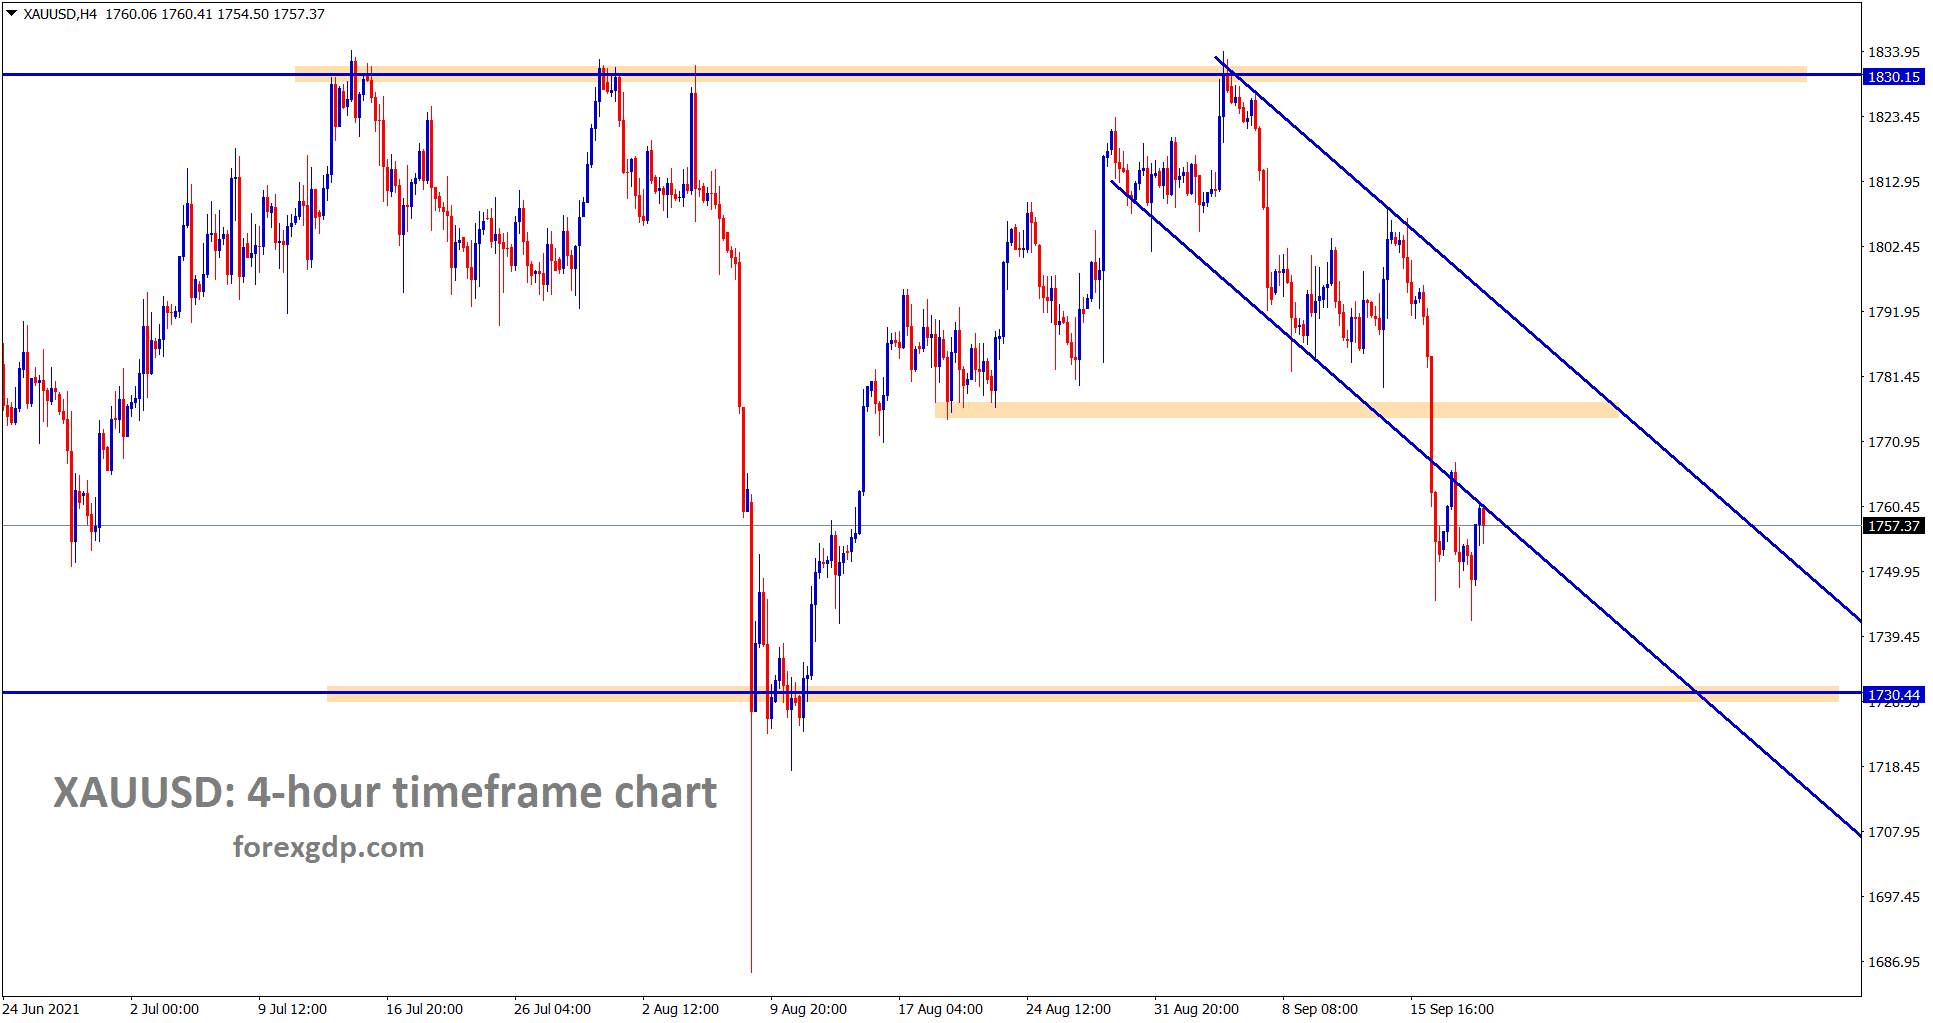 Gold is consolidating now after breaking the descending channel